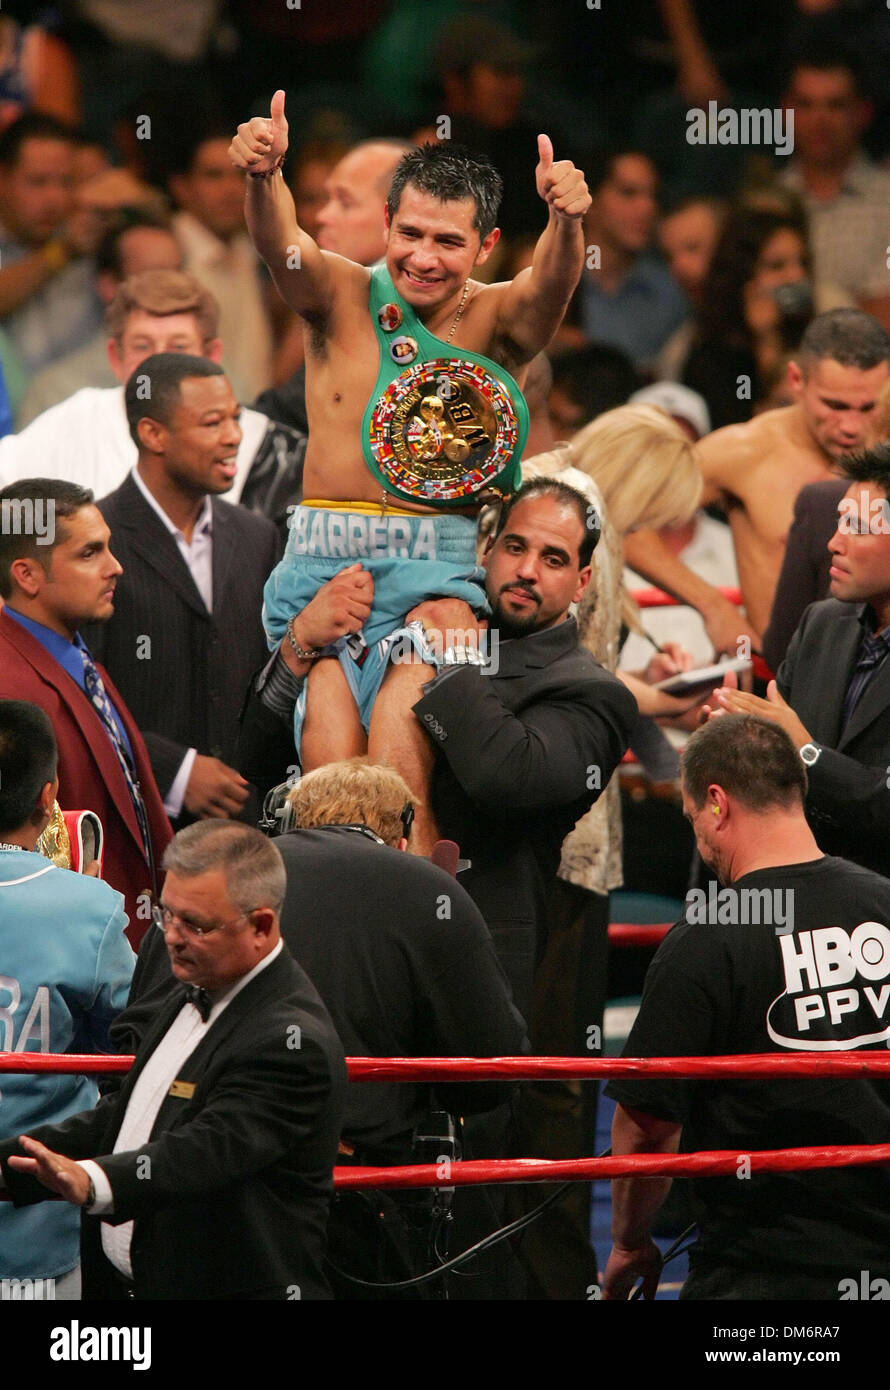 Sep 17, 2005; Las Vegas, NV, USA; BOXING: WBC World Super Featherweight Champion MARCO ANTONIO BARRERA defeats Robbie Peden to unify The WBC and IBF title. Barrera is promoted by Oscar De La Hoya's Golden Boy Promotions. Mandatory Credit: Photo by Rob DeLorenzo/ZUMA Press. (©) Copyright 2005 by Rob DeLorenzo - Stock Image